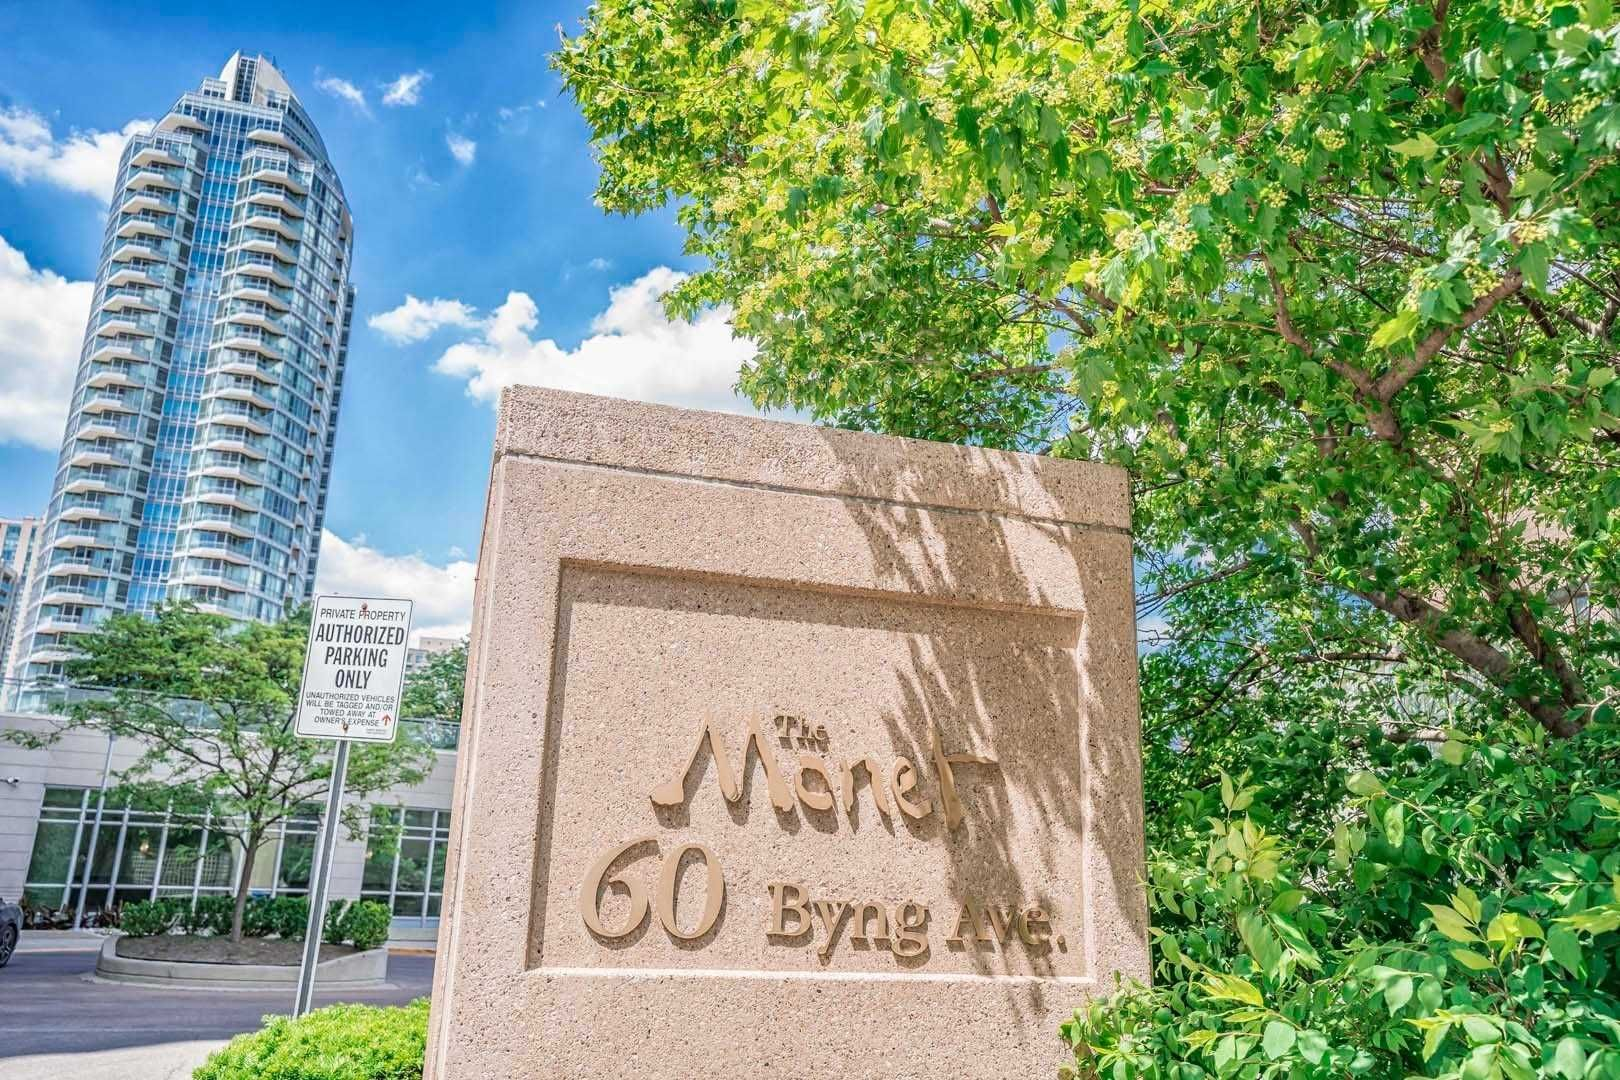 60 Byng Ave W, unit 1312 for sale in Toronto - image #2